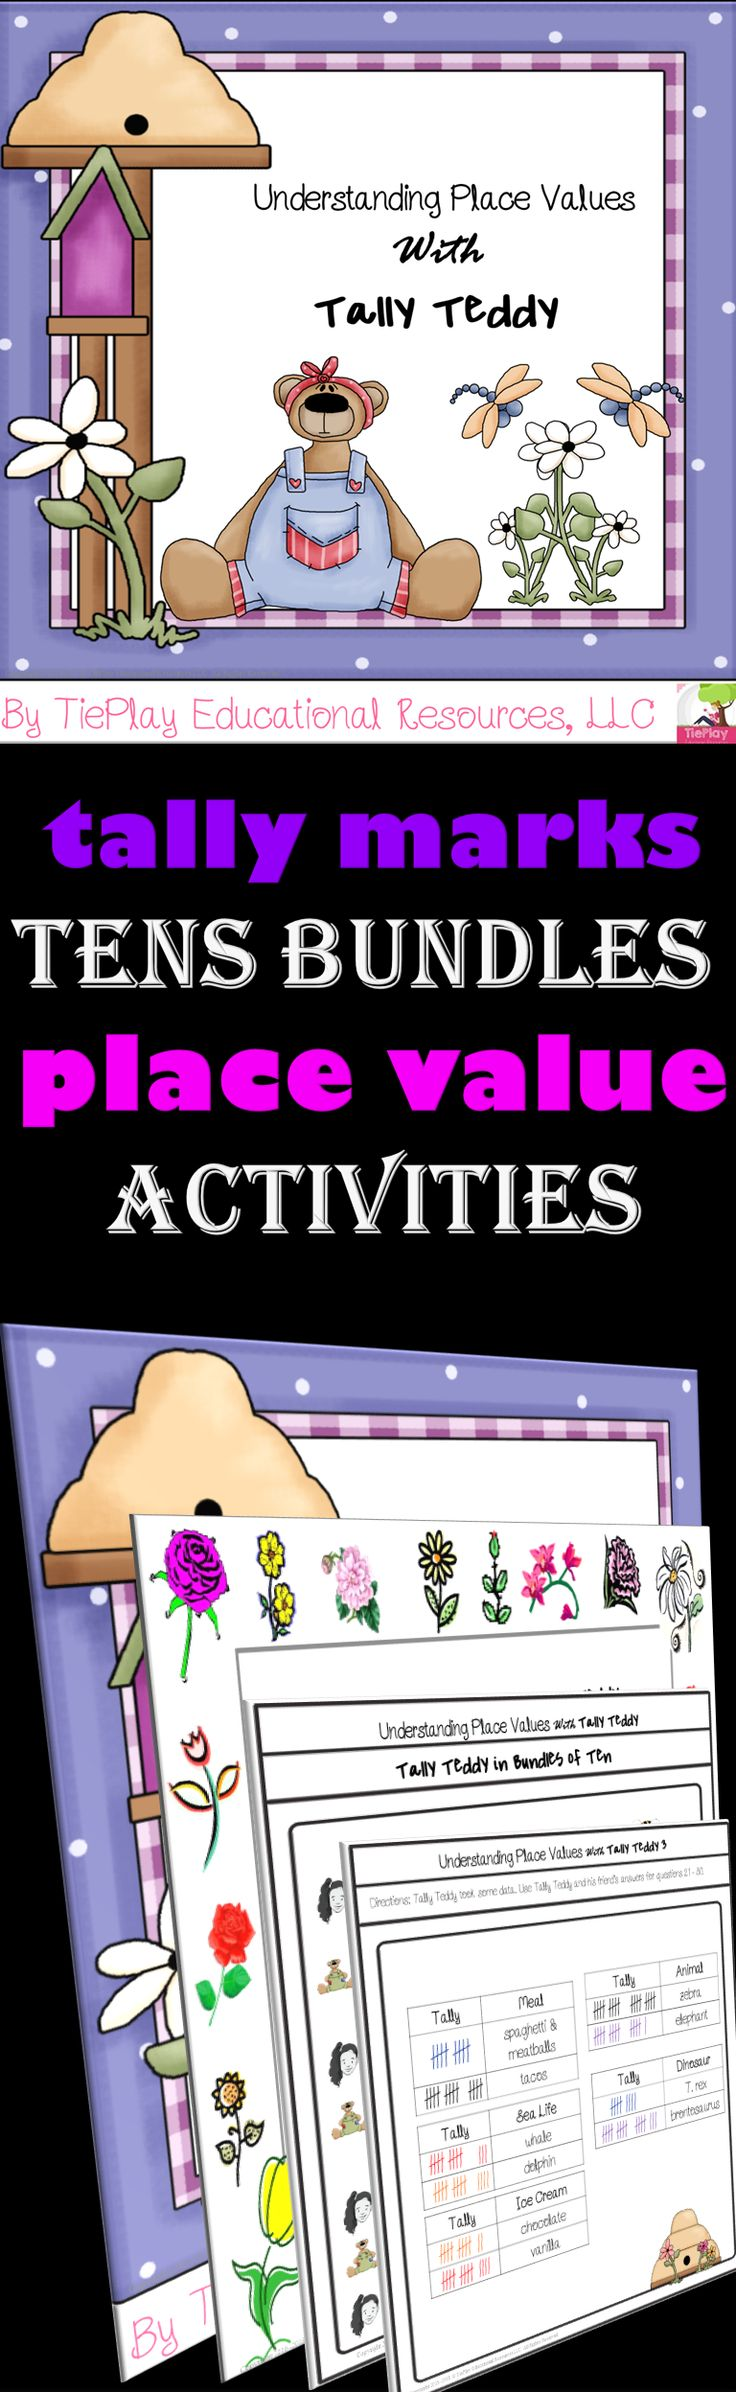 Price $5.50 Let Tally Teddy and Lara tell your class about math! In Understanding Place Values With Tally Teddy, learners answer questions after participating in tally, bundles of ten, and place value activities. Understanding Place Values With Tally Teddy includes lesson plans prior to task card use, 36 task cards, 3 Tally Teddy Math Stories, teacher key, directions for use, 4 student awards cards, and links to video math stories and songs.